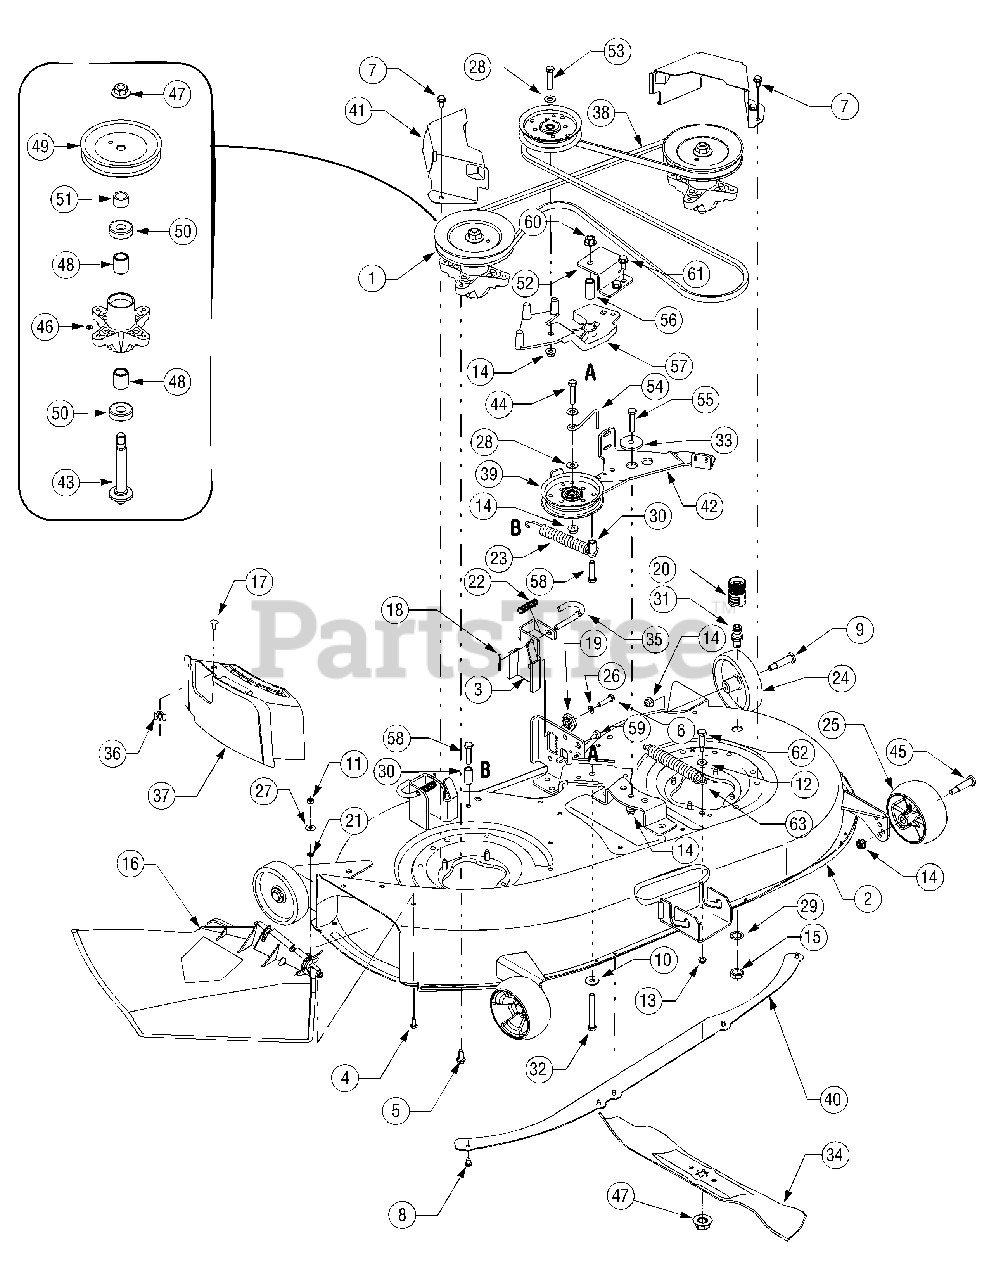 Cub Cadet Parts on the Mower Deck 42 inch 618-04461